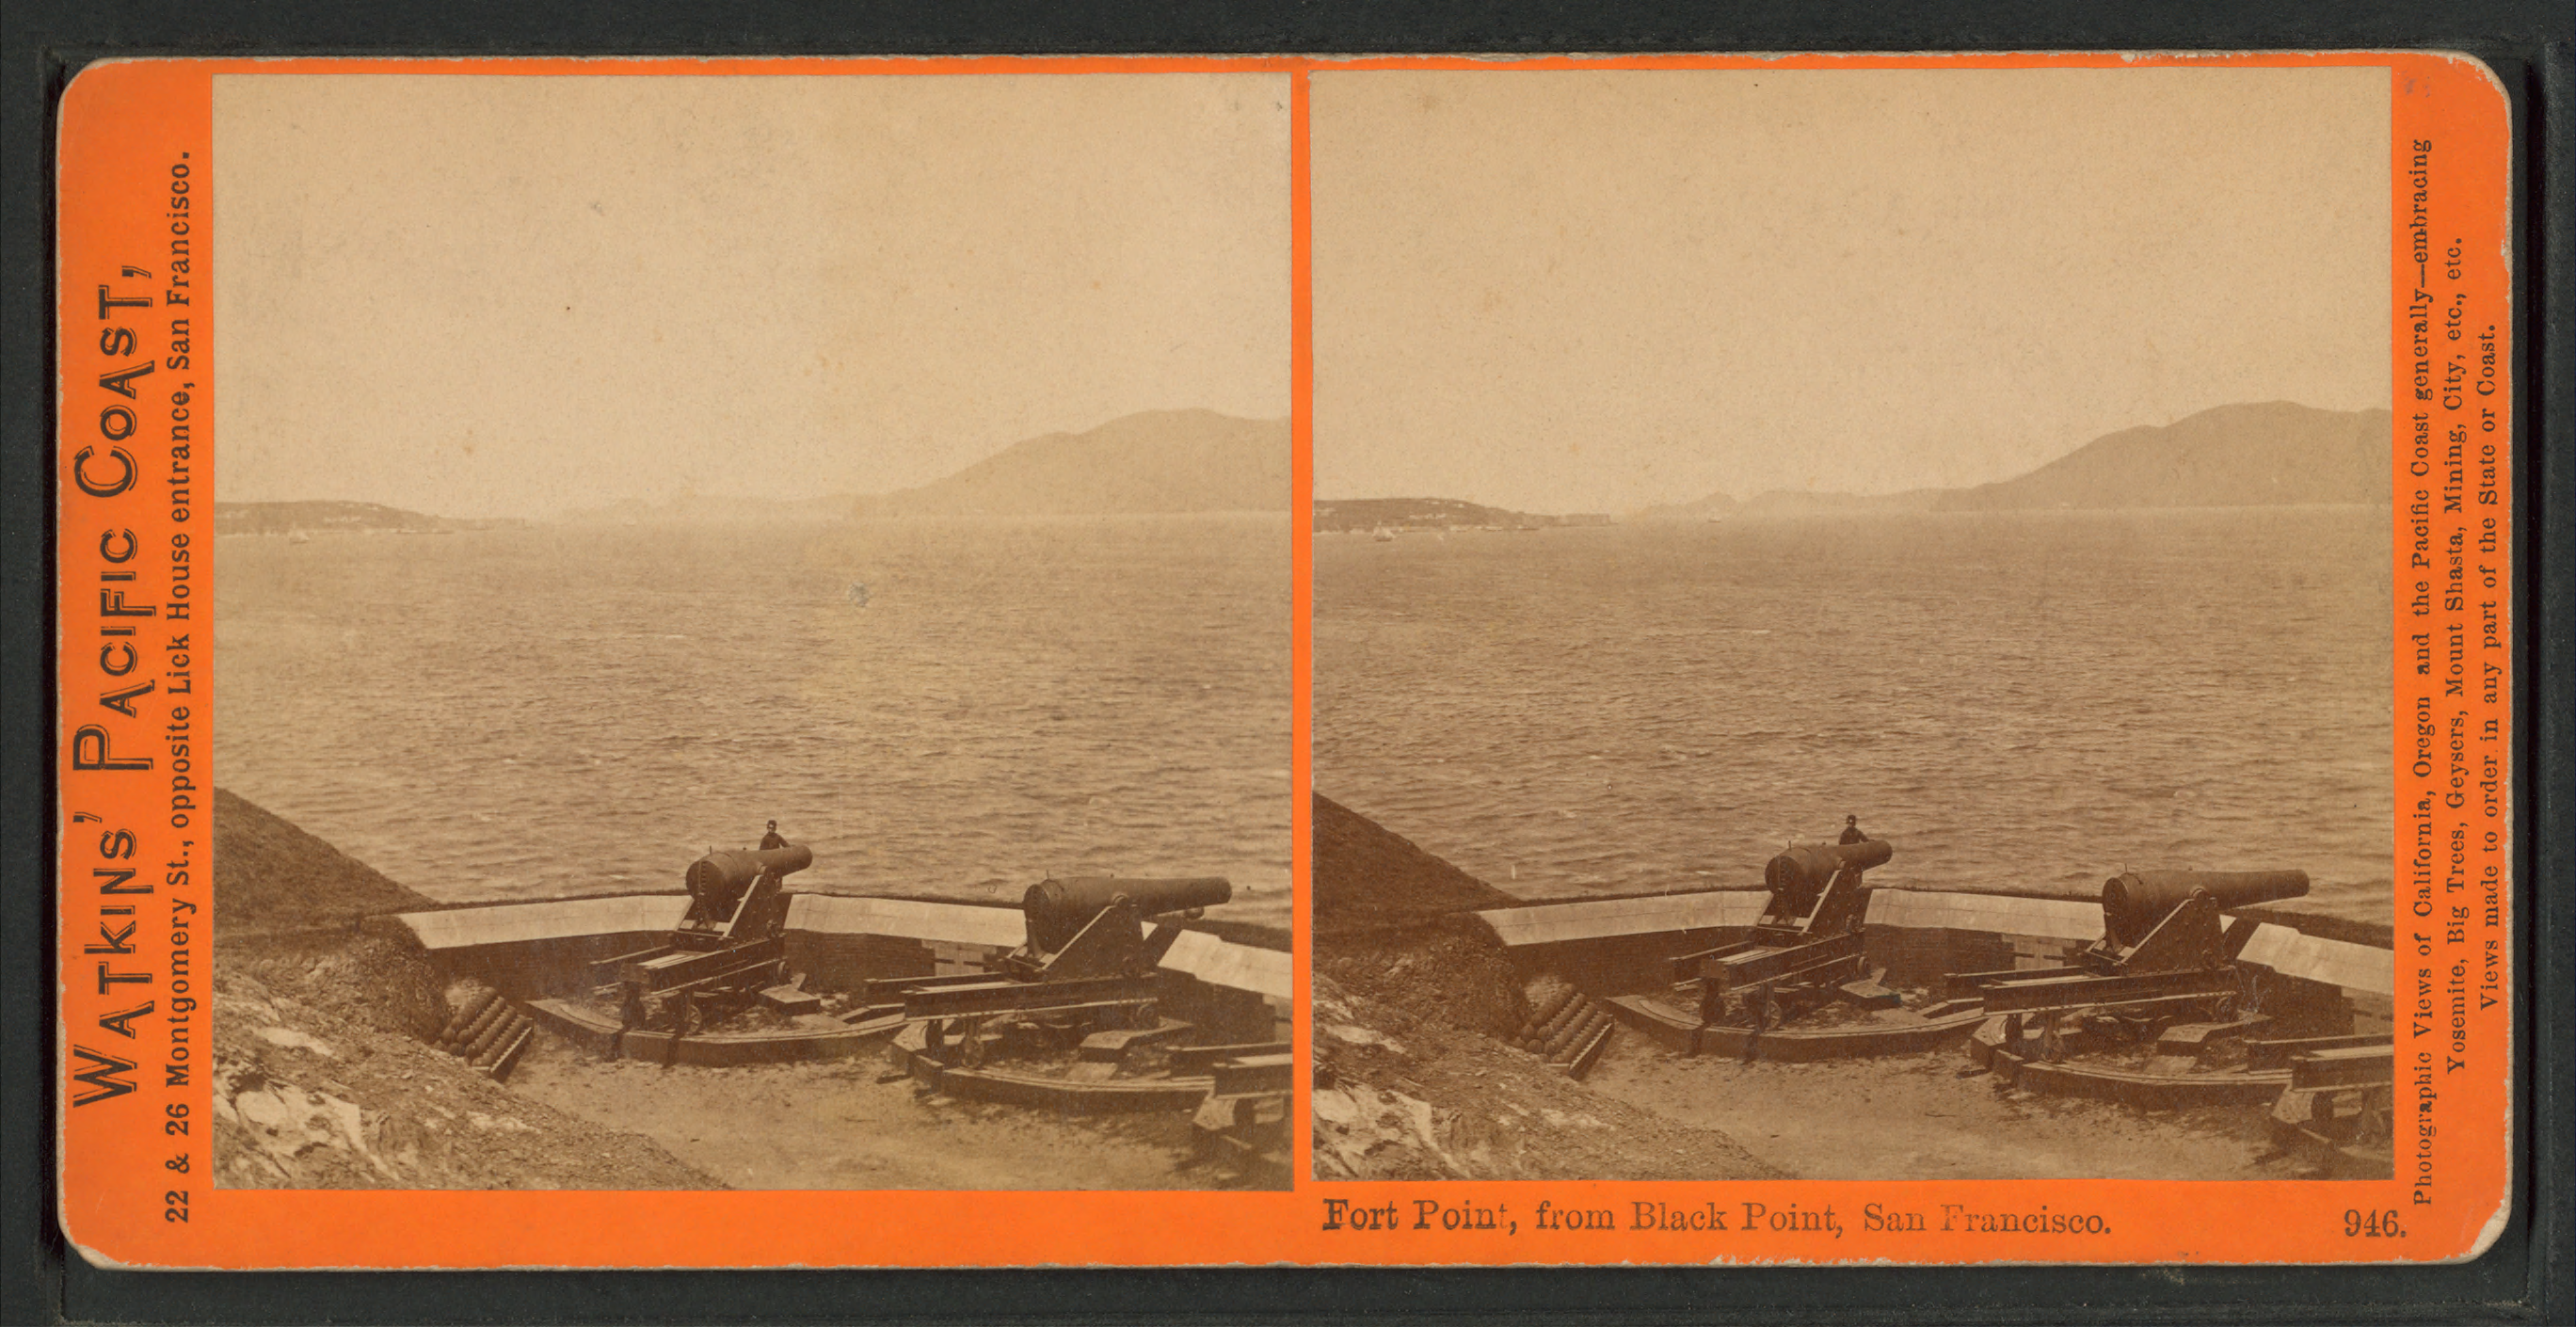 file fort point  from black point  san francisco  from robert n  dennis collection of